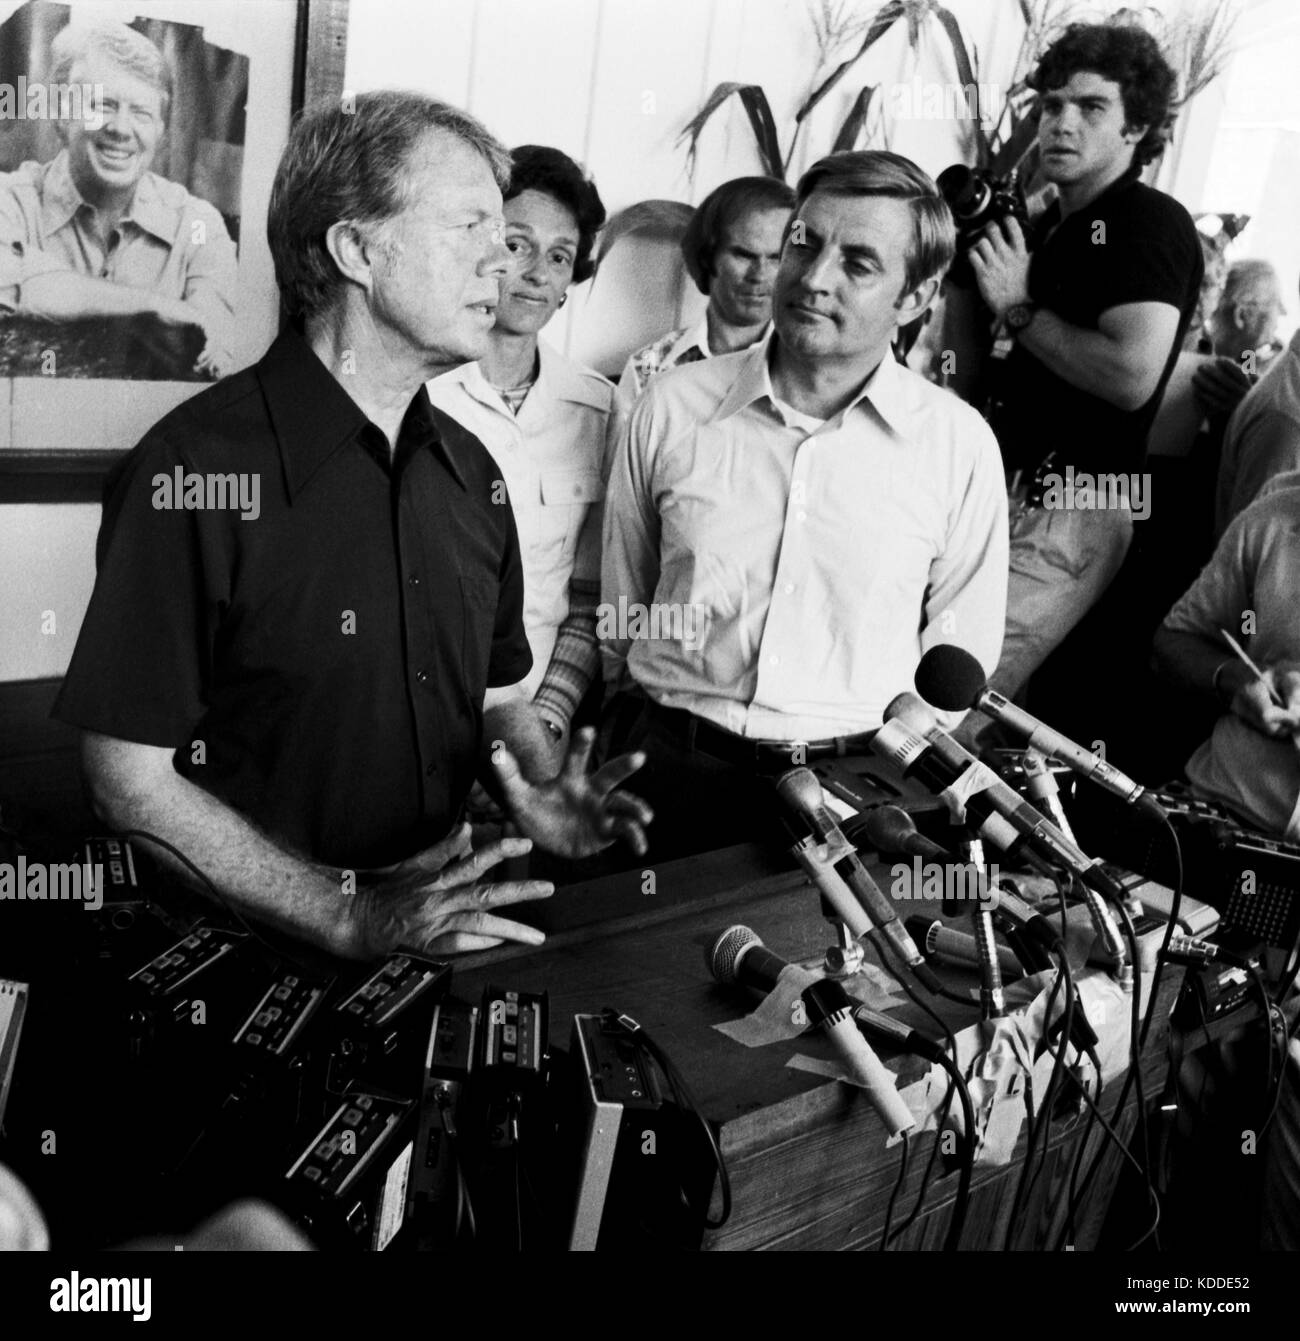 1976 Democratic presidential nominee Jimmy Carter and his running mate Walter 'Fritz' Mondale with wife - Stock Image